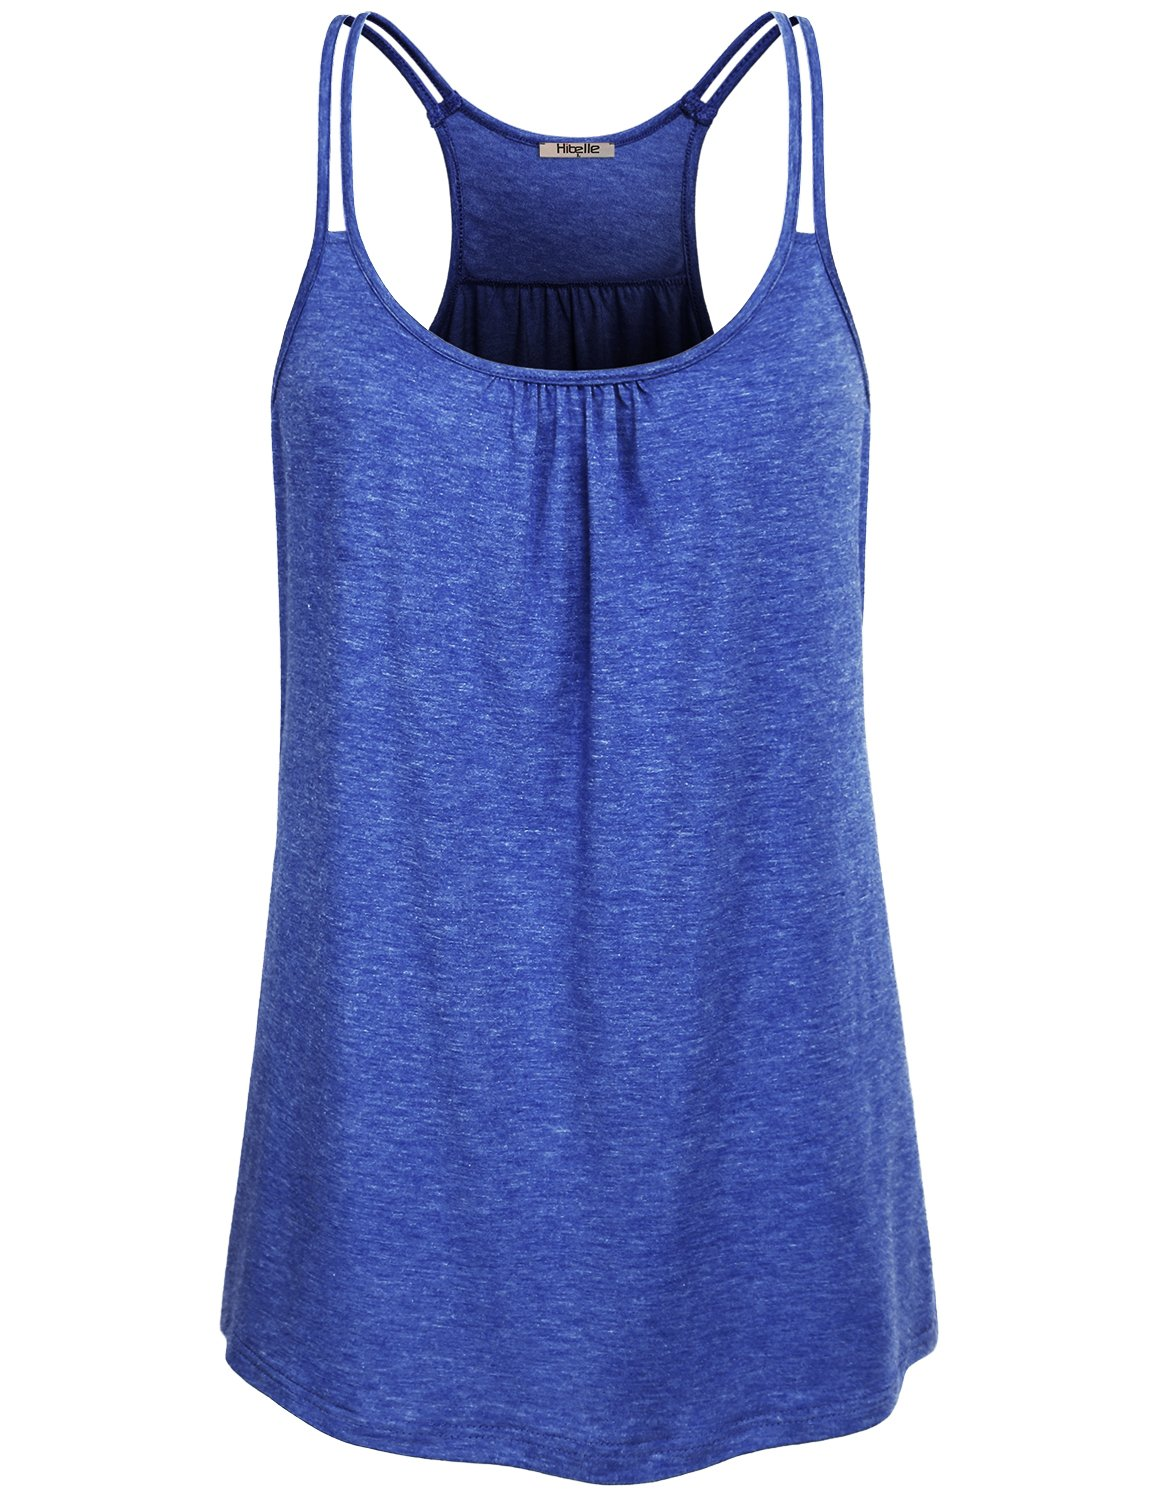 Hibelle Loose Fitting Tops for Women, Ladies Sleeveless Summer Casual Yoga Tanks Sports Shirts Boat Neck Flowy A Line Hem Dressy Front Drape Swing Racerback Workout Knit Cami Blue Small